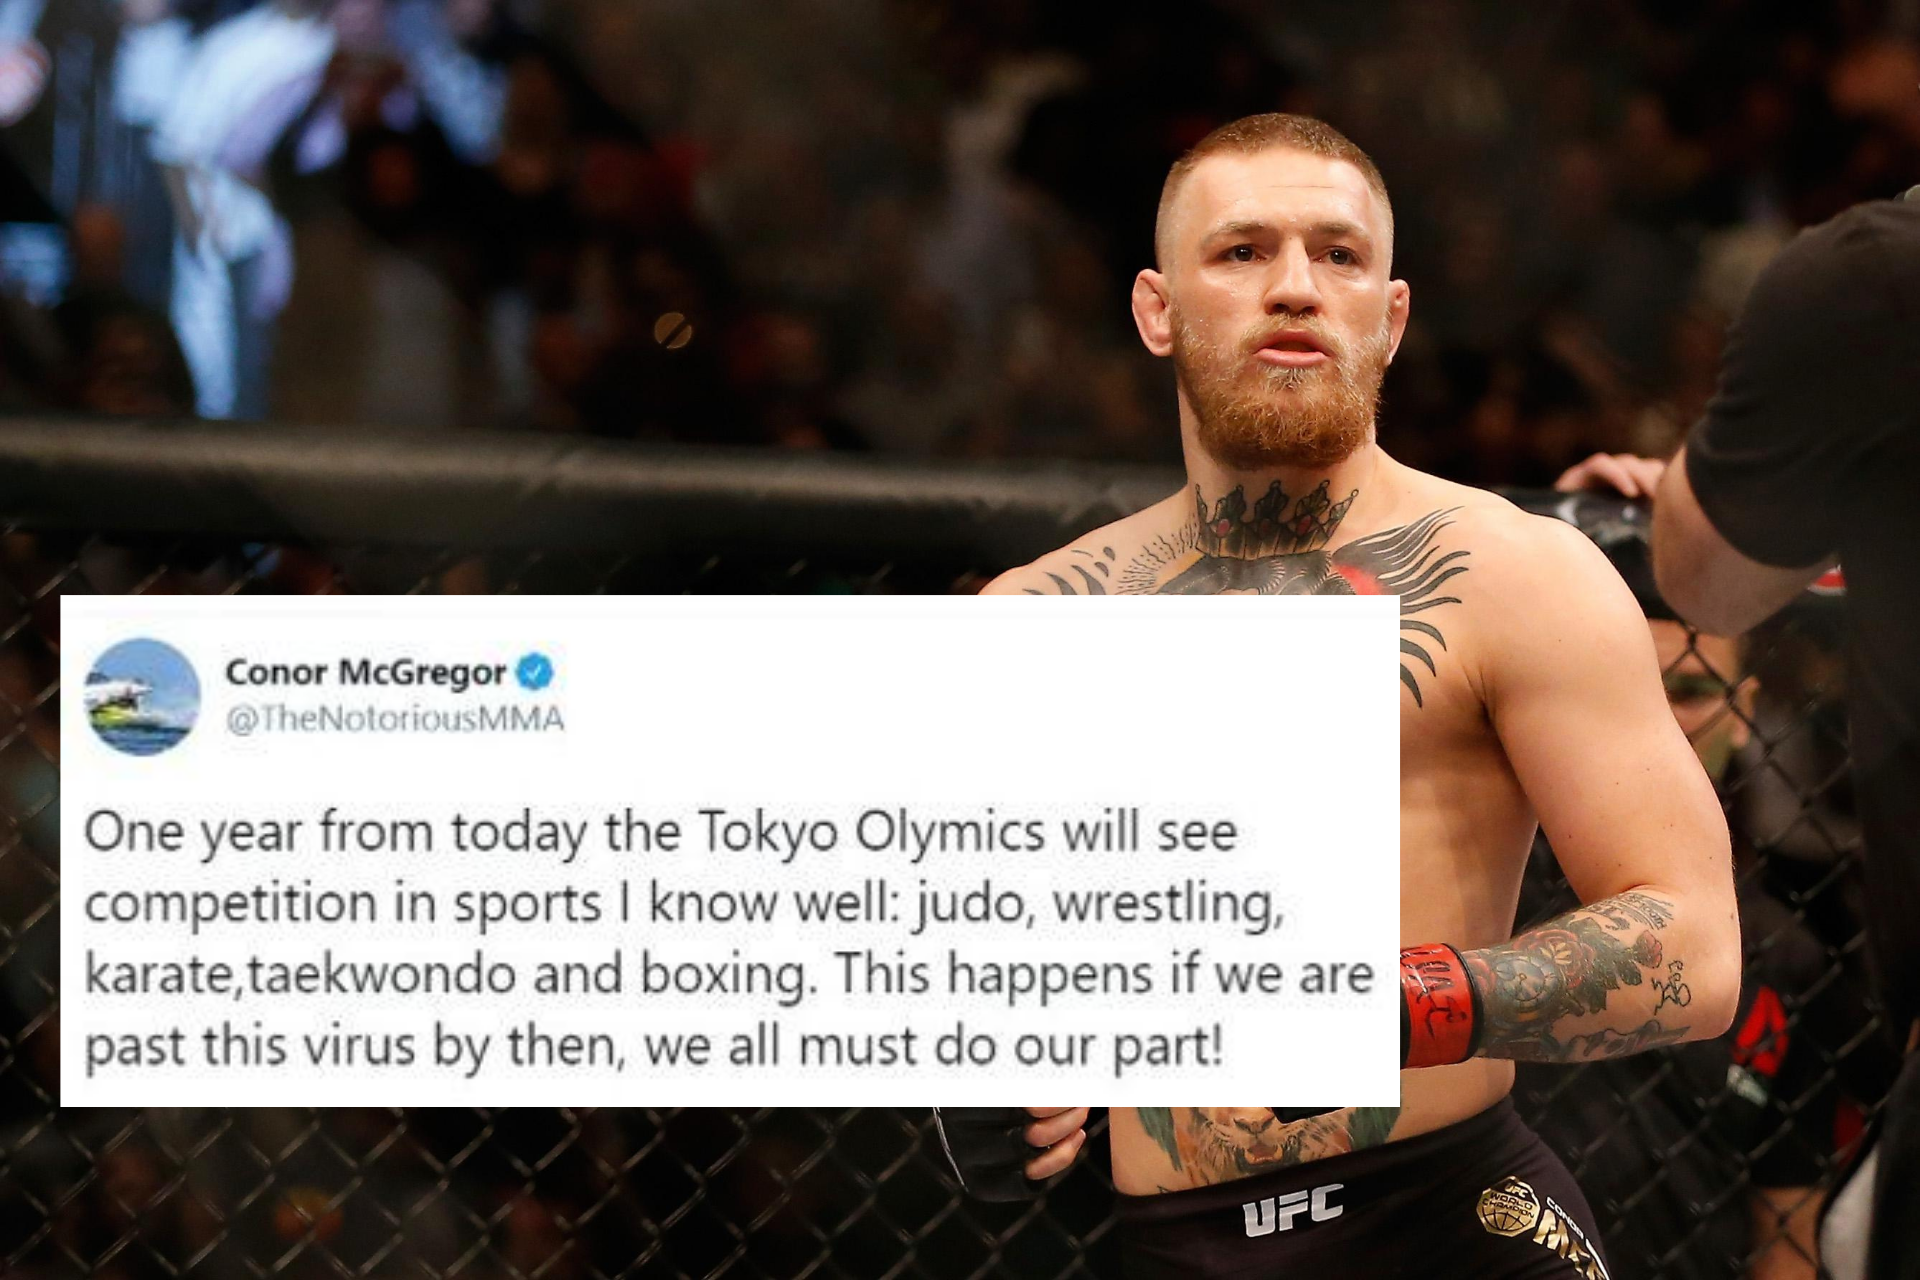 Conor McGregor hints that he may be taking part in Tokyo Olympics - Conor McGregor